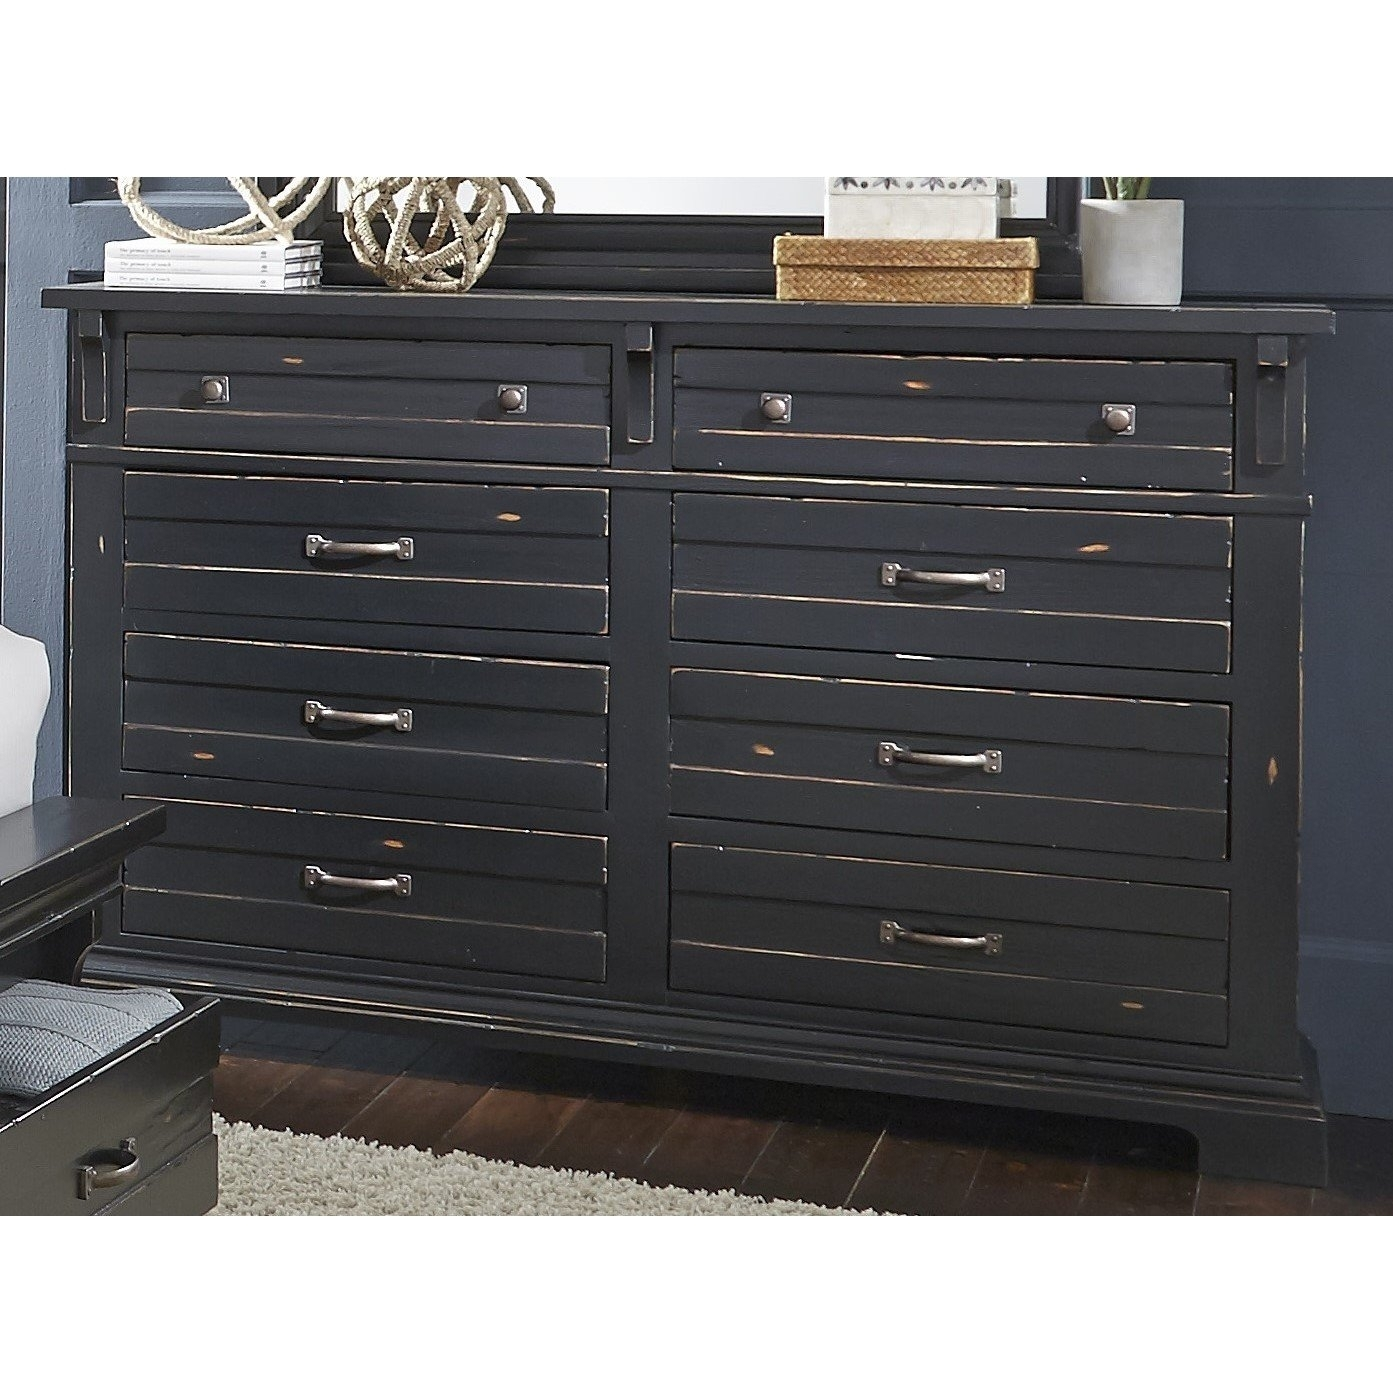 Shop Chestnut Hill Distressed Black Pine/ Veneer 8 Drawer Dresser Throughout 2017 Bale Rustic Grey Sideboards (#18 of 20)